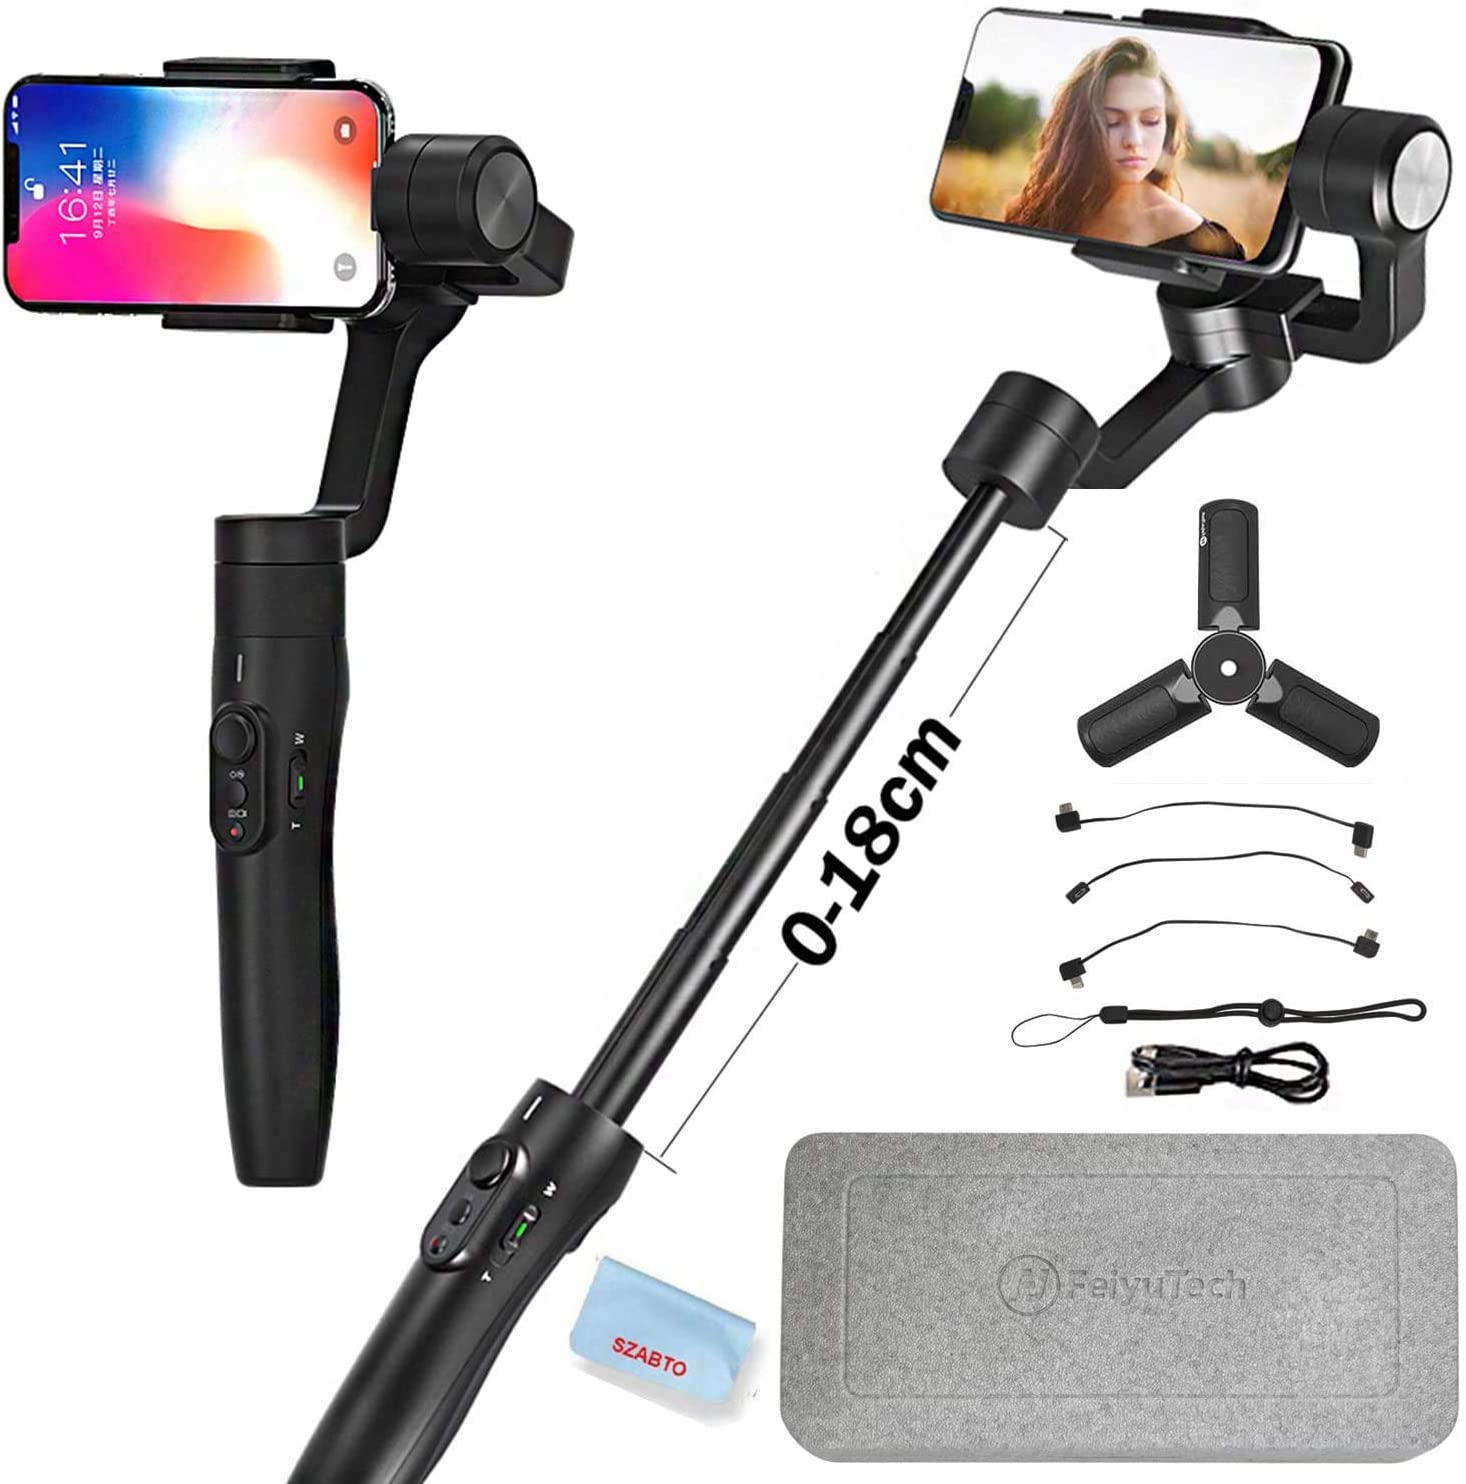 Time-Lapse /& Face Tracking,Black iOS//Android APP for Auto Panoramas Hbwz Vimble 2 Extendable Handheld 3-Axis Stabilizer Gimbal for Smartphones Anti-Shake Selfie Stick